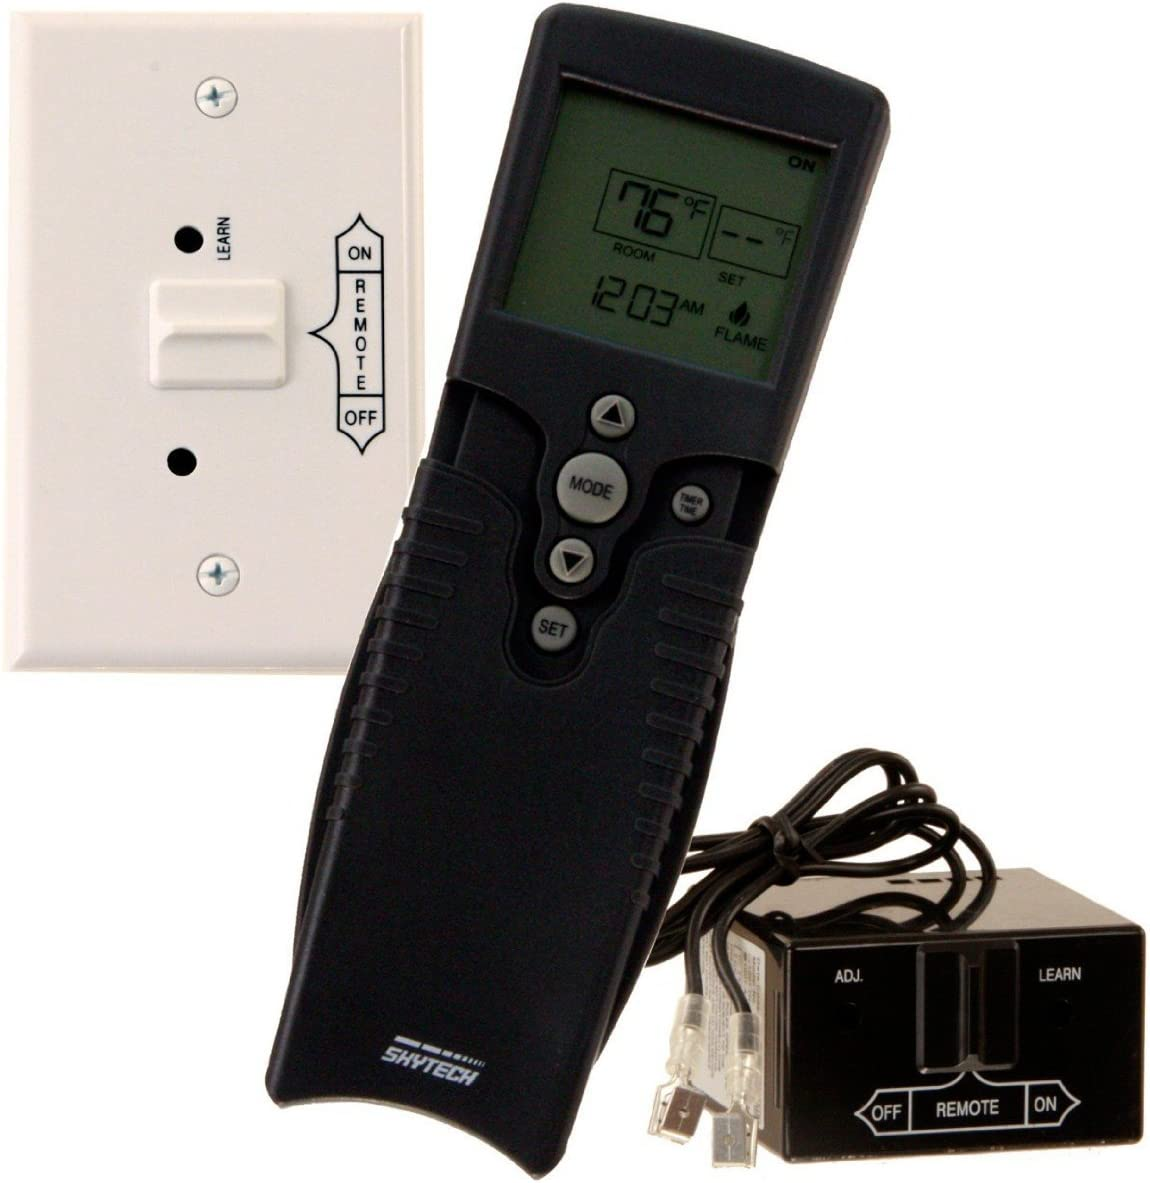 SkyTech 9800323 SKY-3002 Control with Timer Fireplace-remotes-and-thermostats, Black